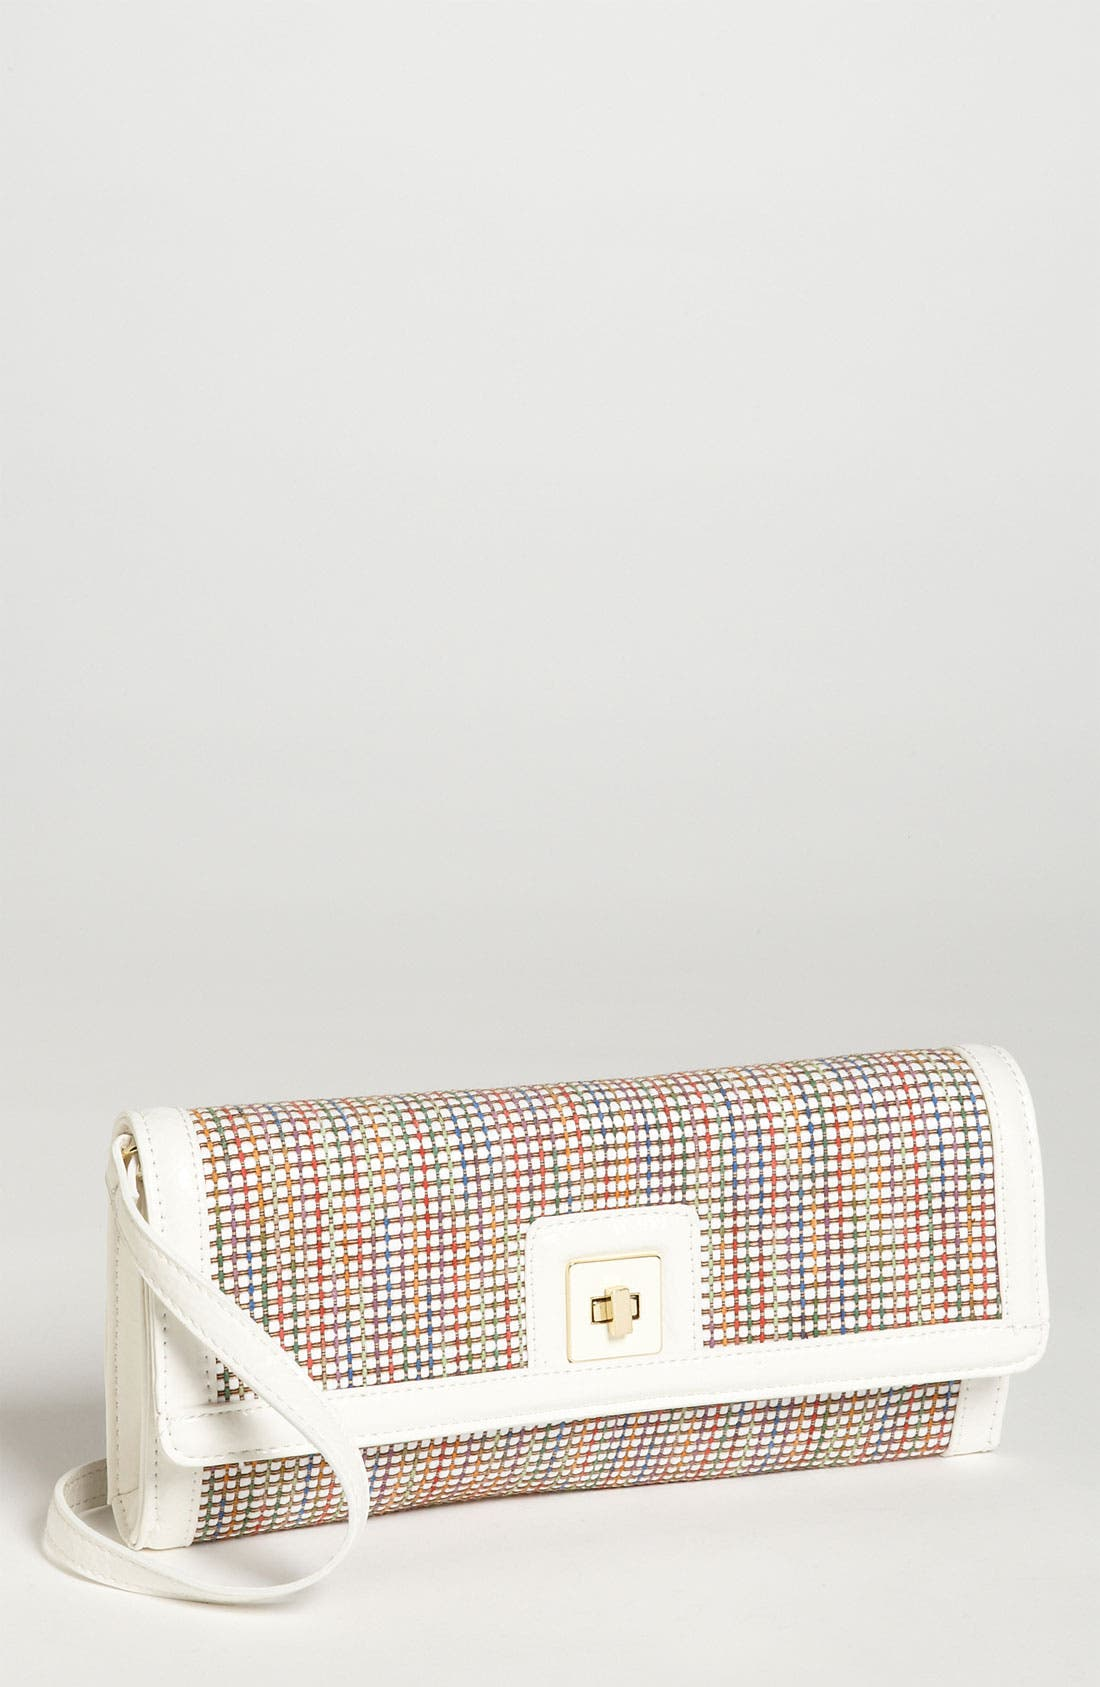 Alternate Image 1 Selected - SR Squared by Sondra Roberts Multicolored Straw Clutch